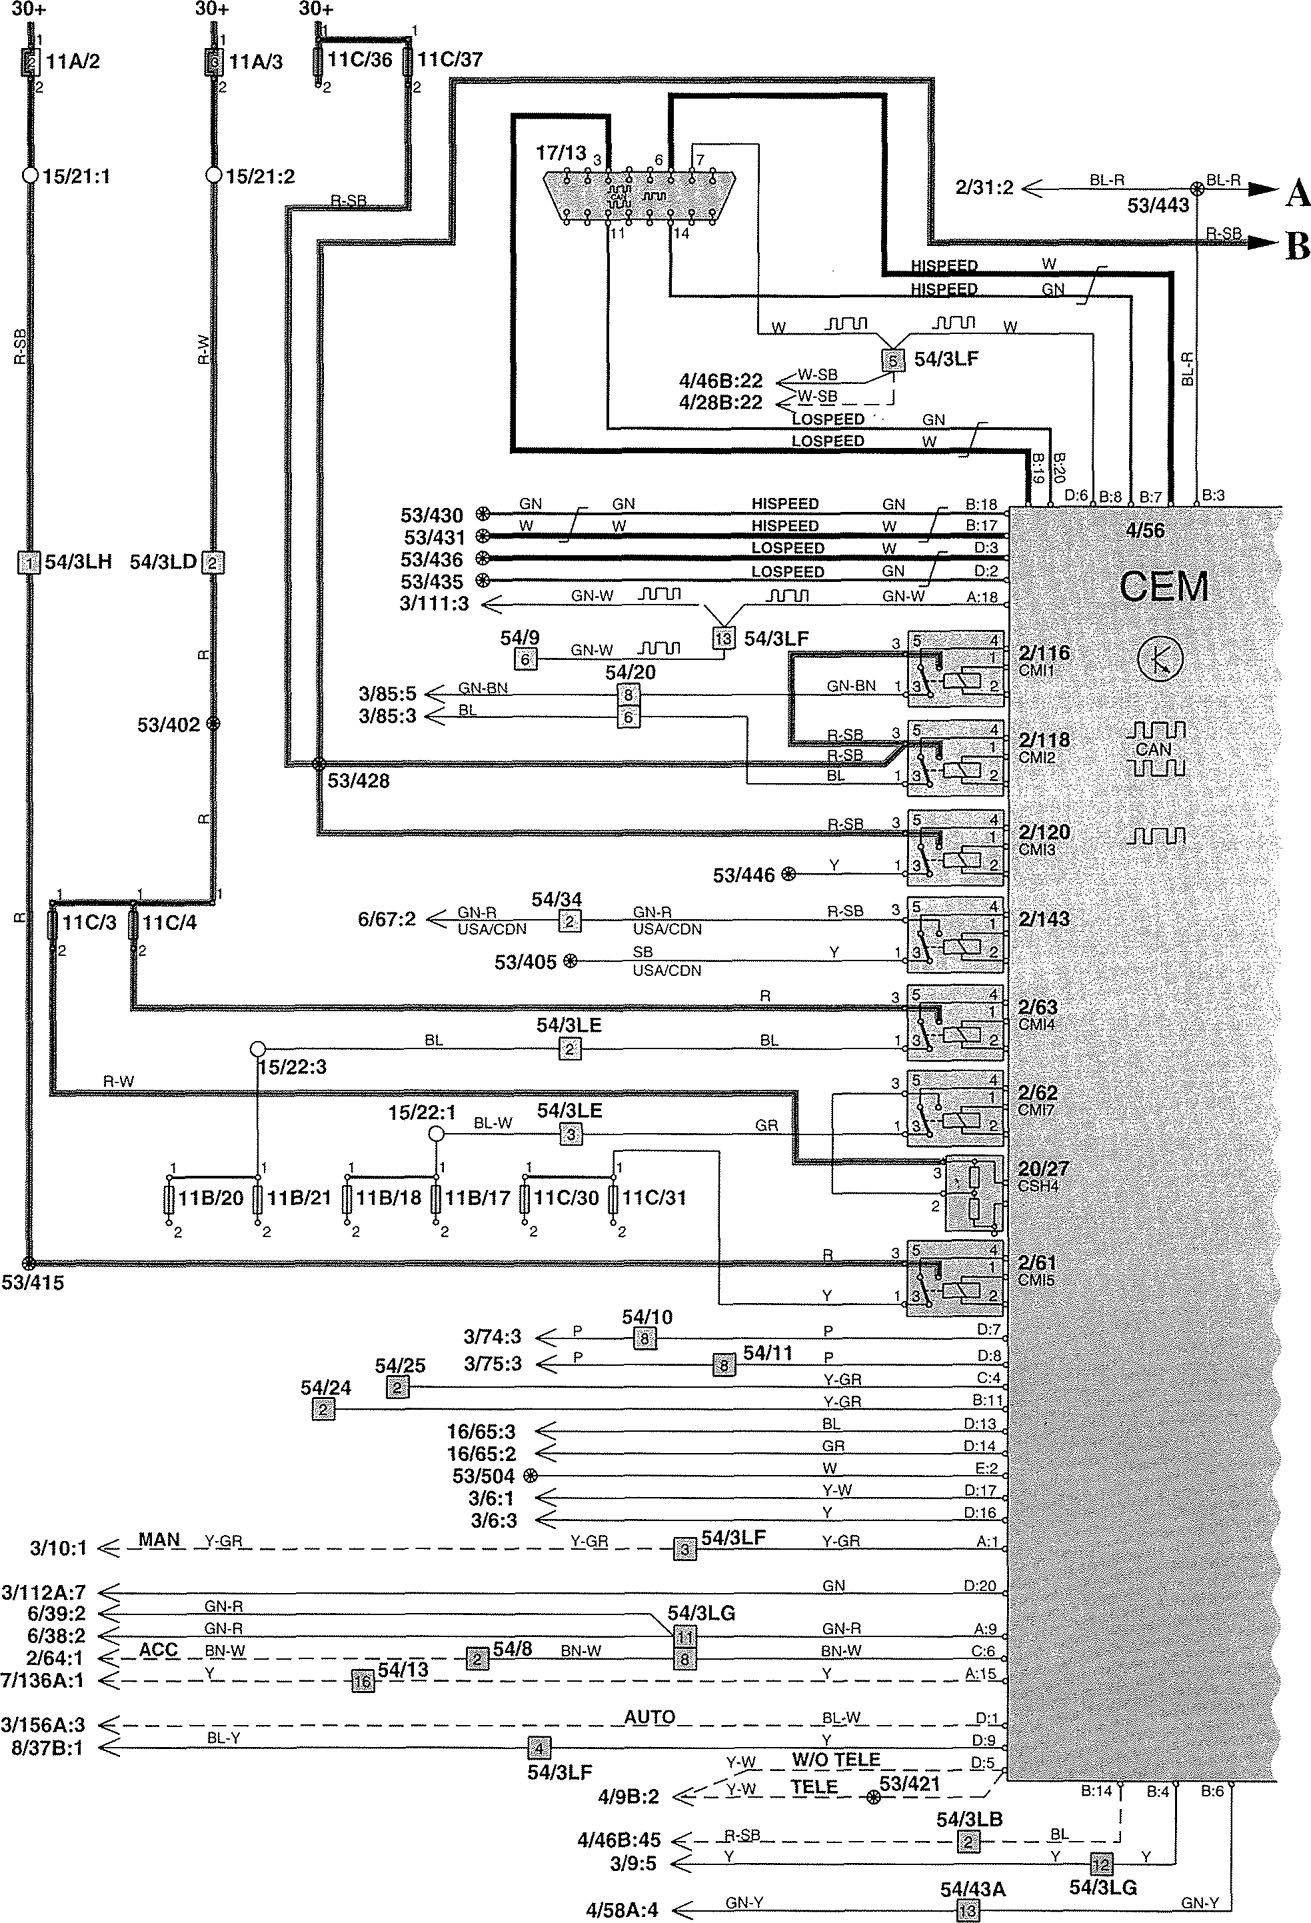 volvo V70 wiring diagram power distribution 1 2002?resize\=665%2C975 volvo xc v70 wiring diagram volvo v70 timing marks, volvo v70 2002 volvo v70 fuse box diagram at gsmx.co